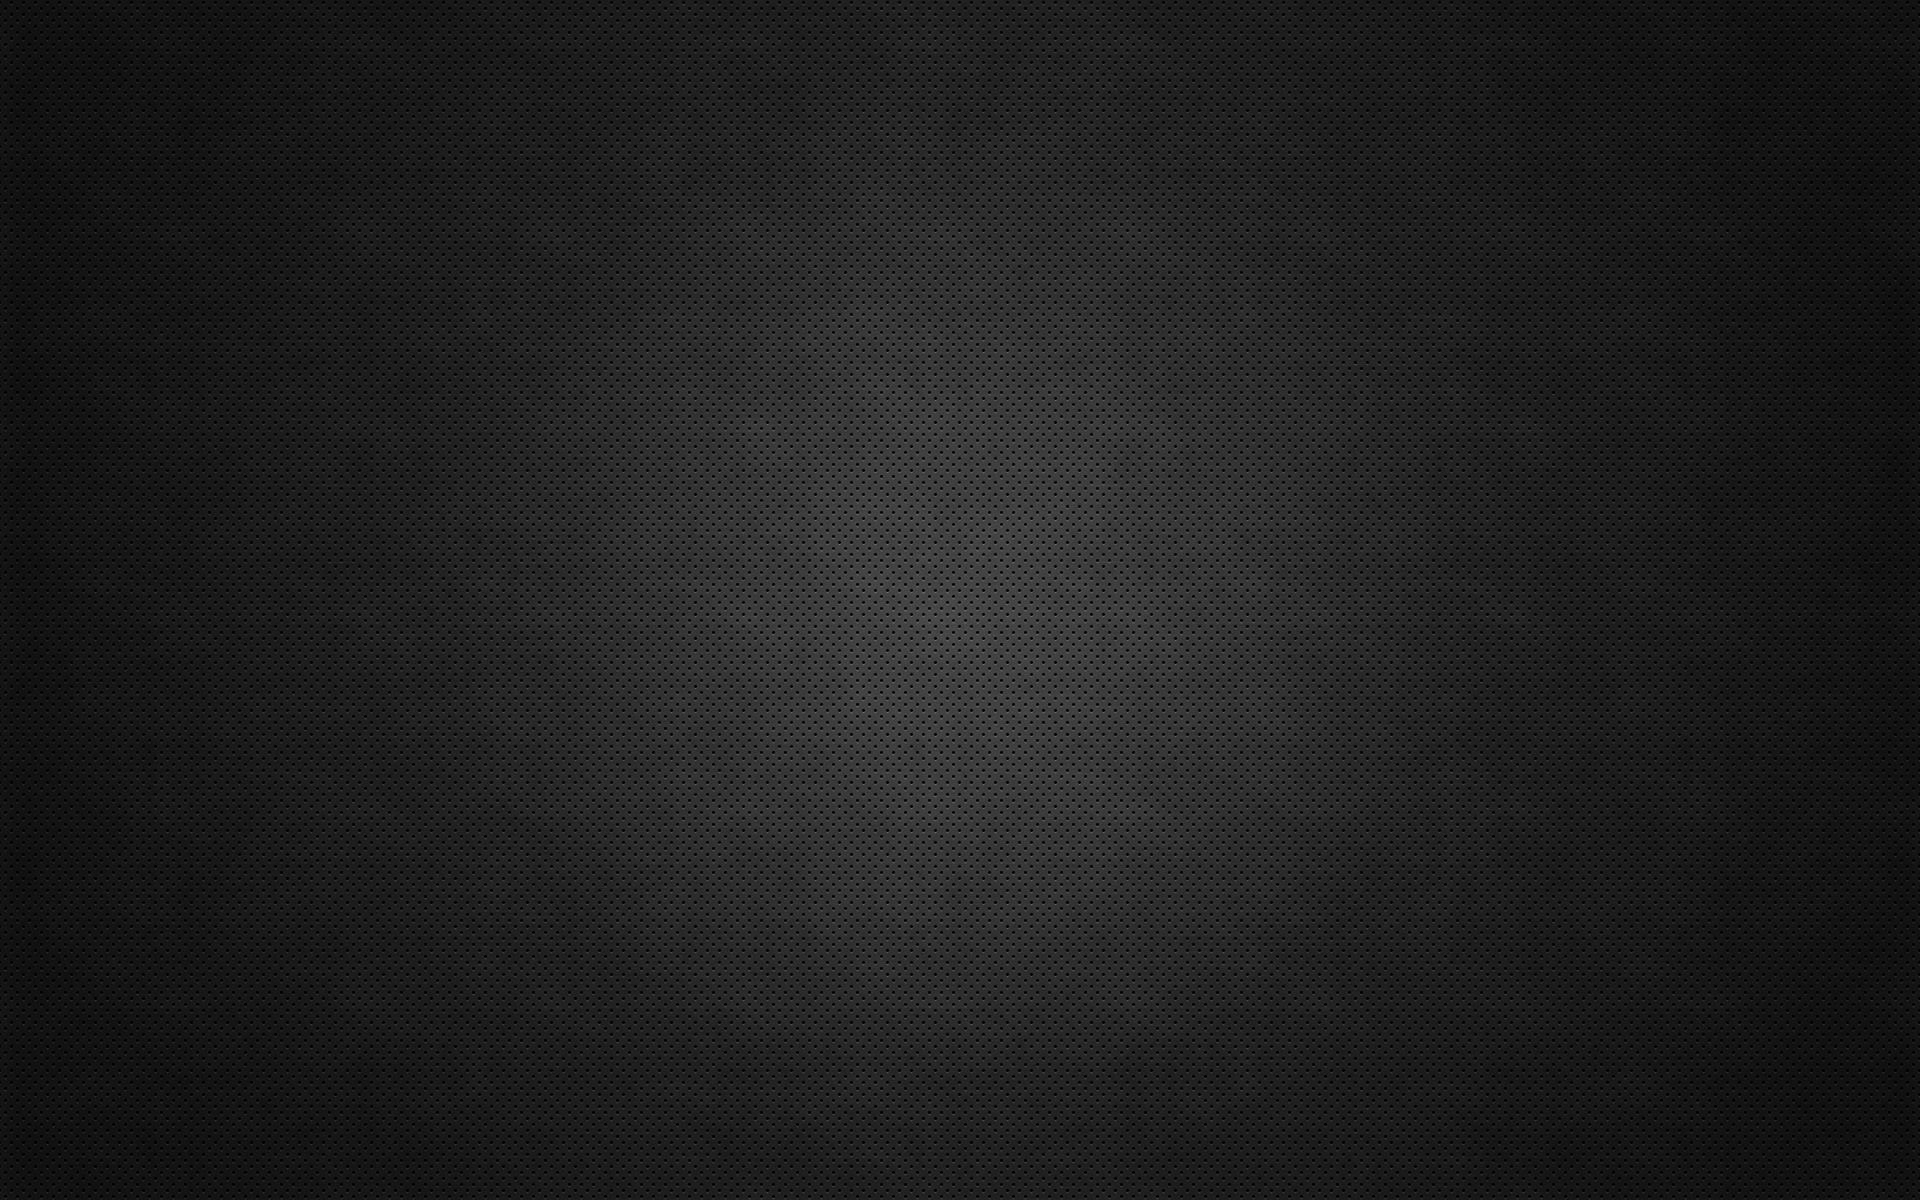 Black metal with small dots background #3822